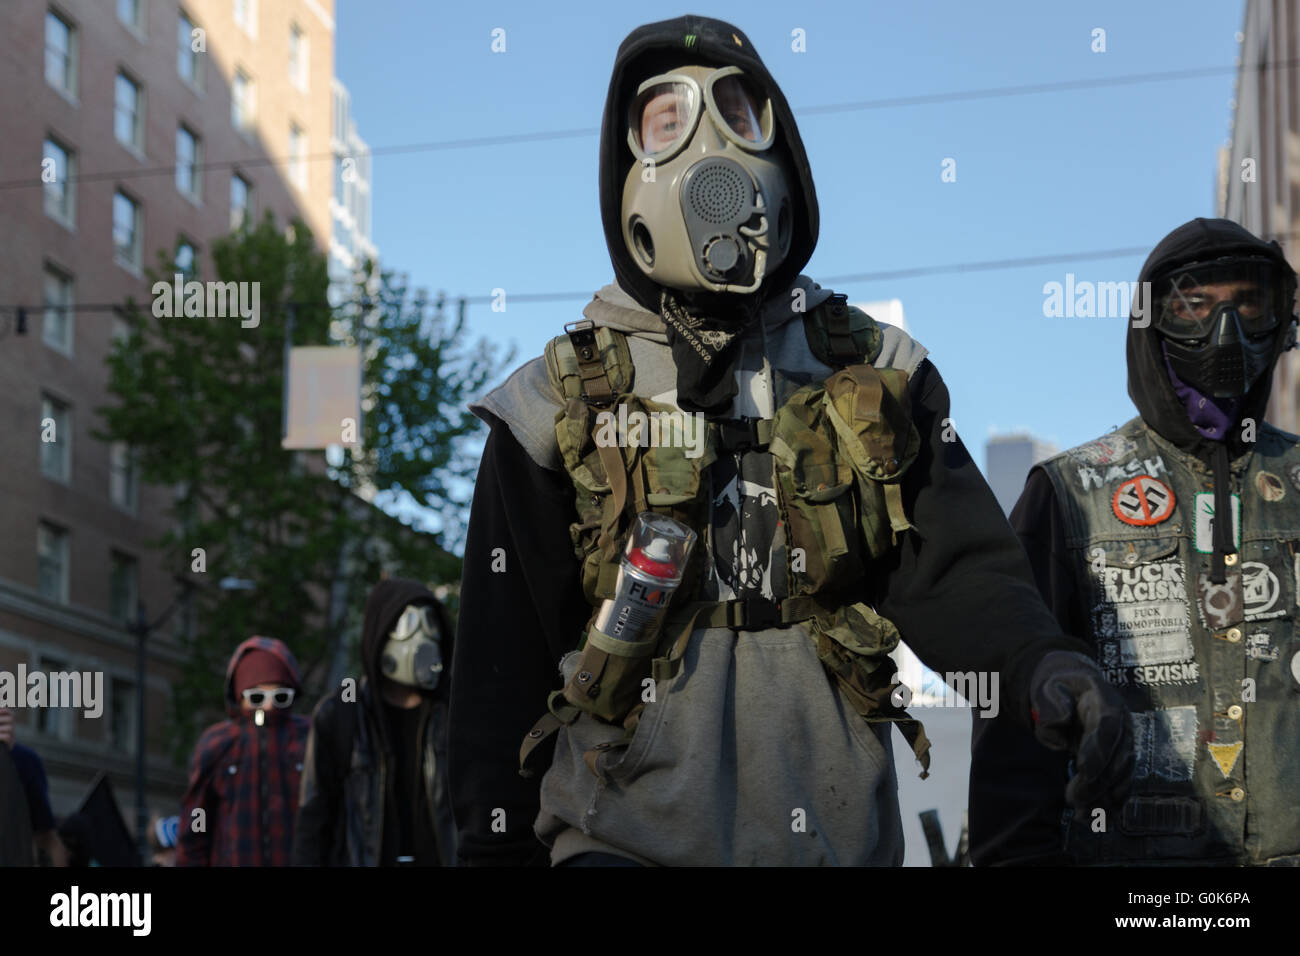 Seattle, USA. 1st May, 2016. Anti-Capitalist/Police/Racism protesters. - Stock Image